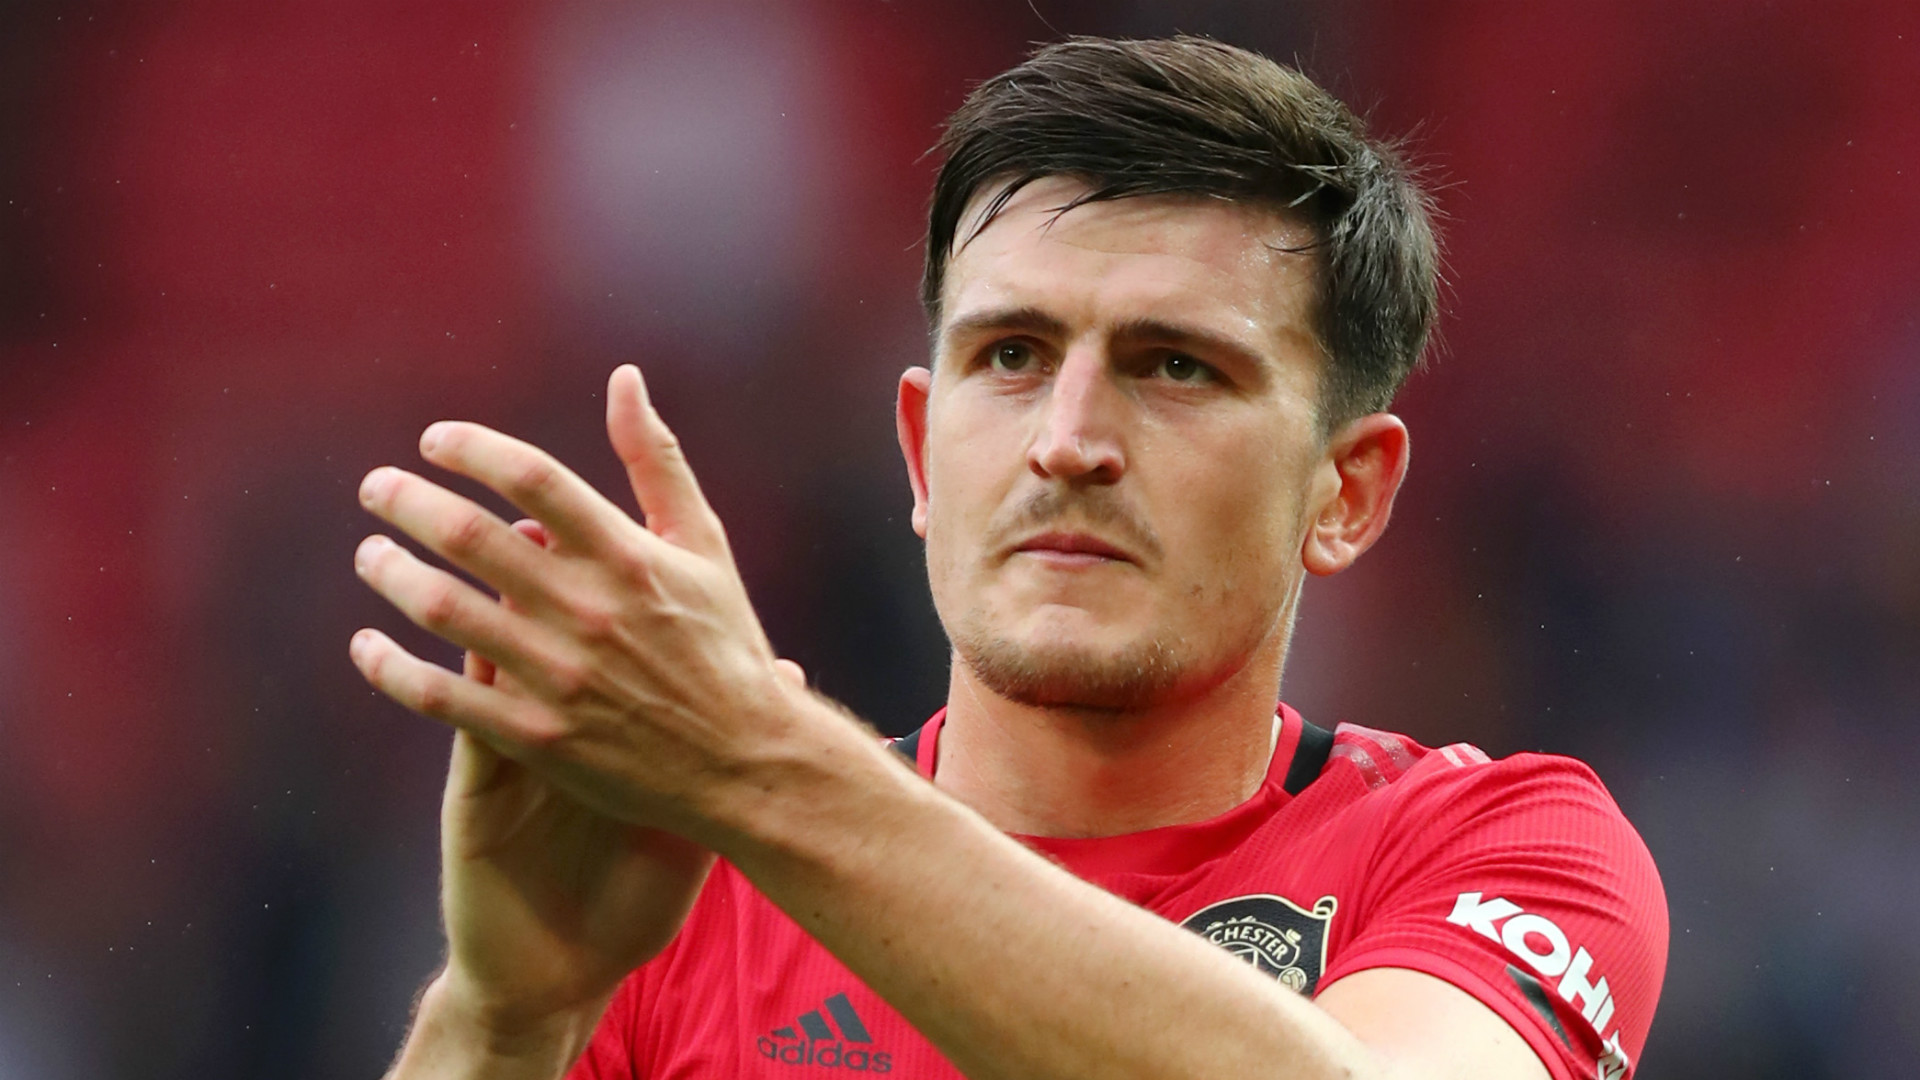 'Man Utd will stand by Maguire' - Greece incident could increase team spirit at Old Trafford, says Neville